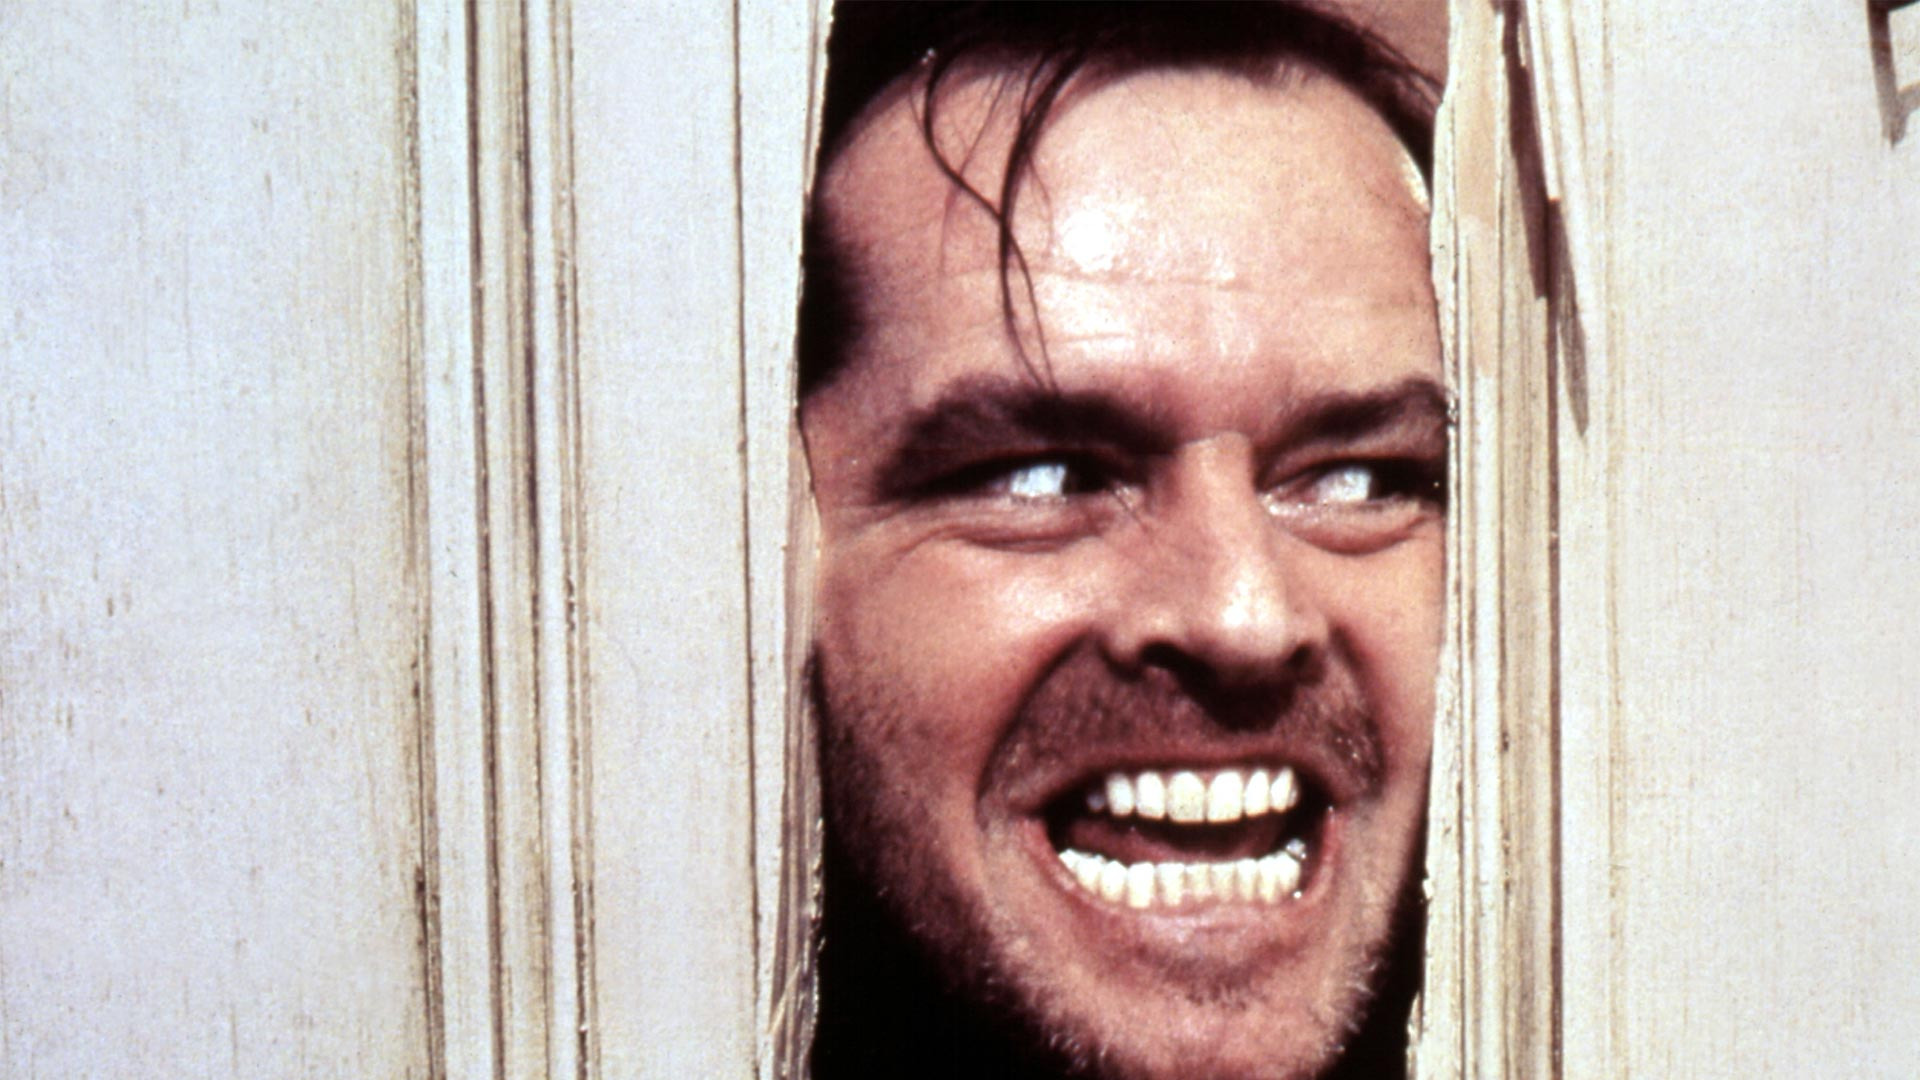 http://drinkinggamezone.com/img/games/movie/the-shining.jpg